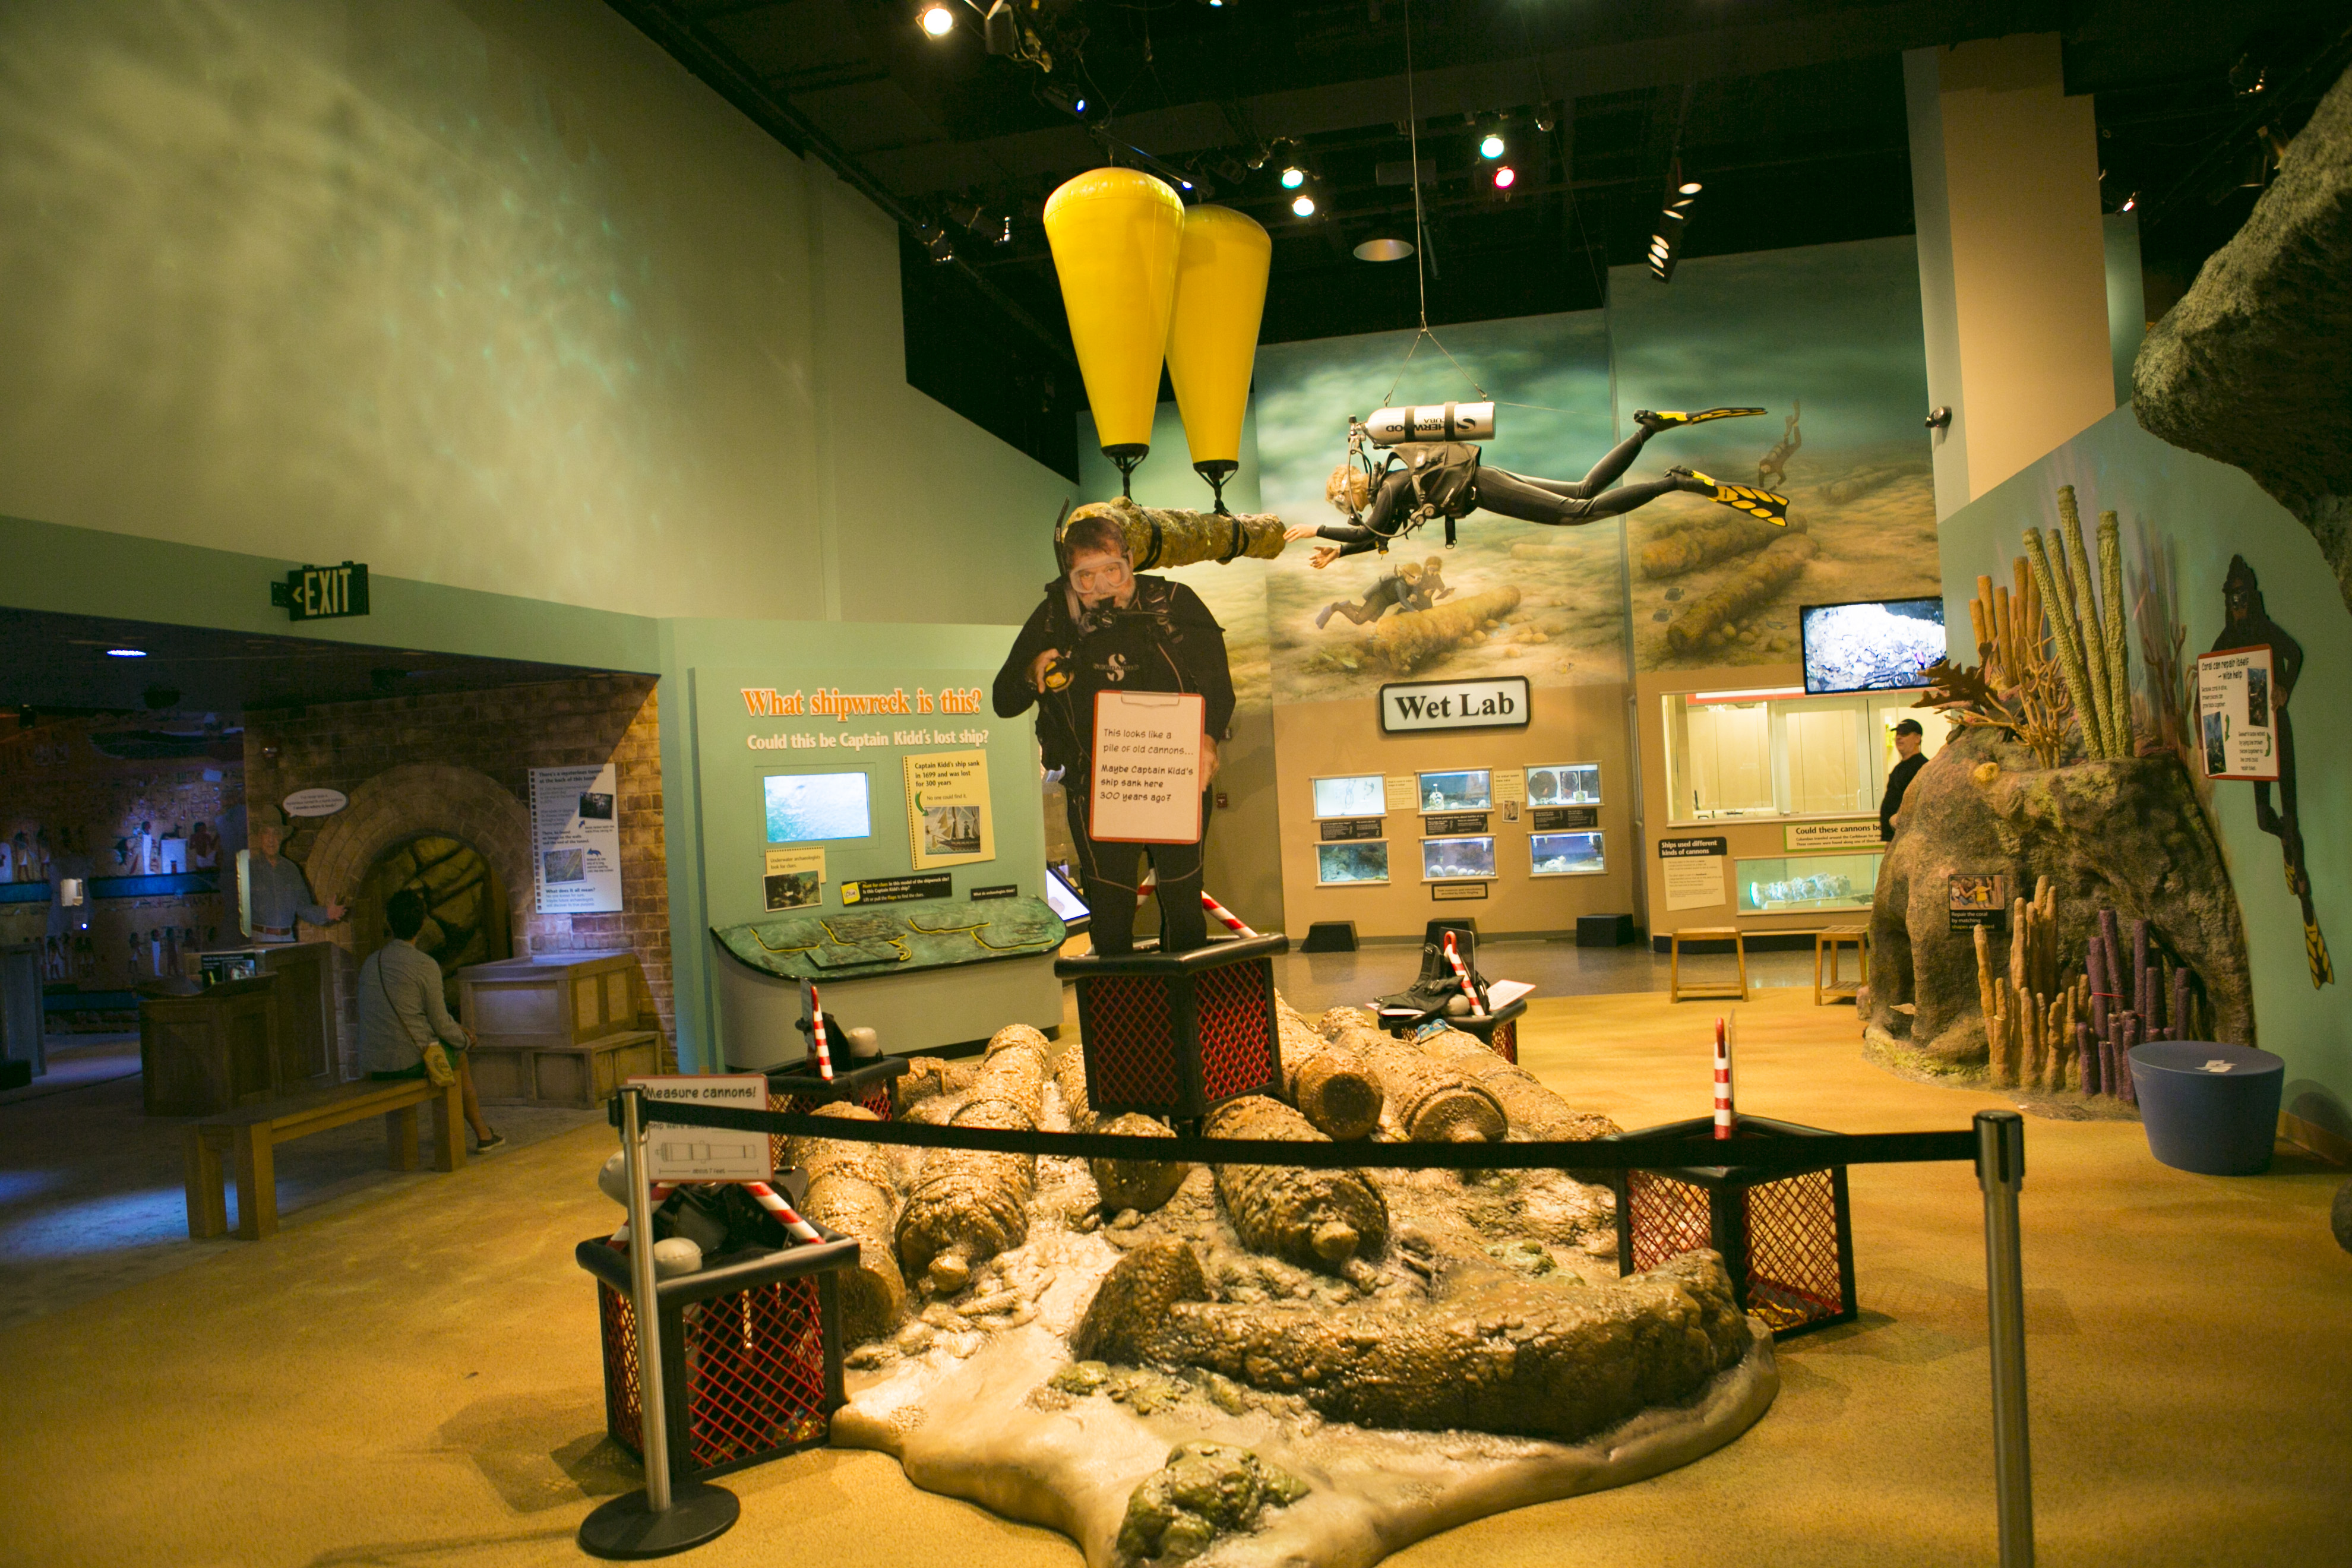 Indianpolis_Childrens_Museum-001_33